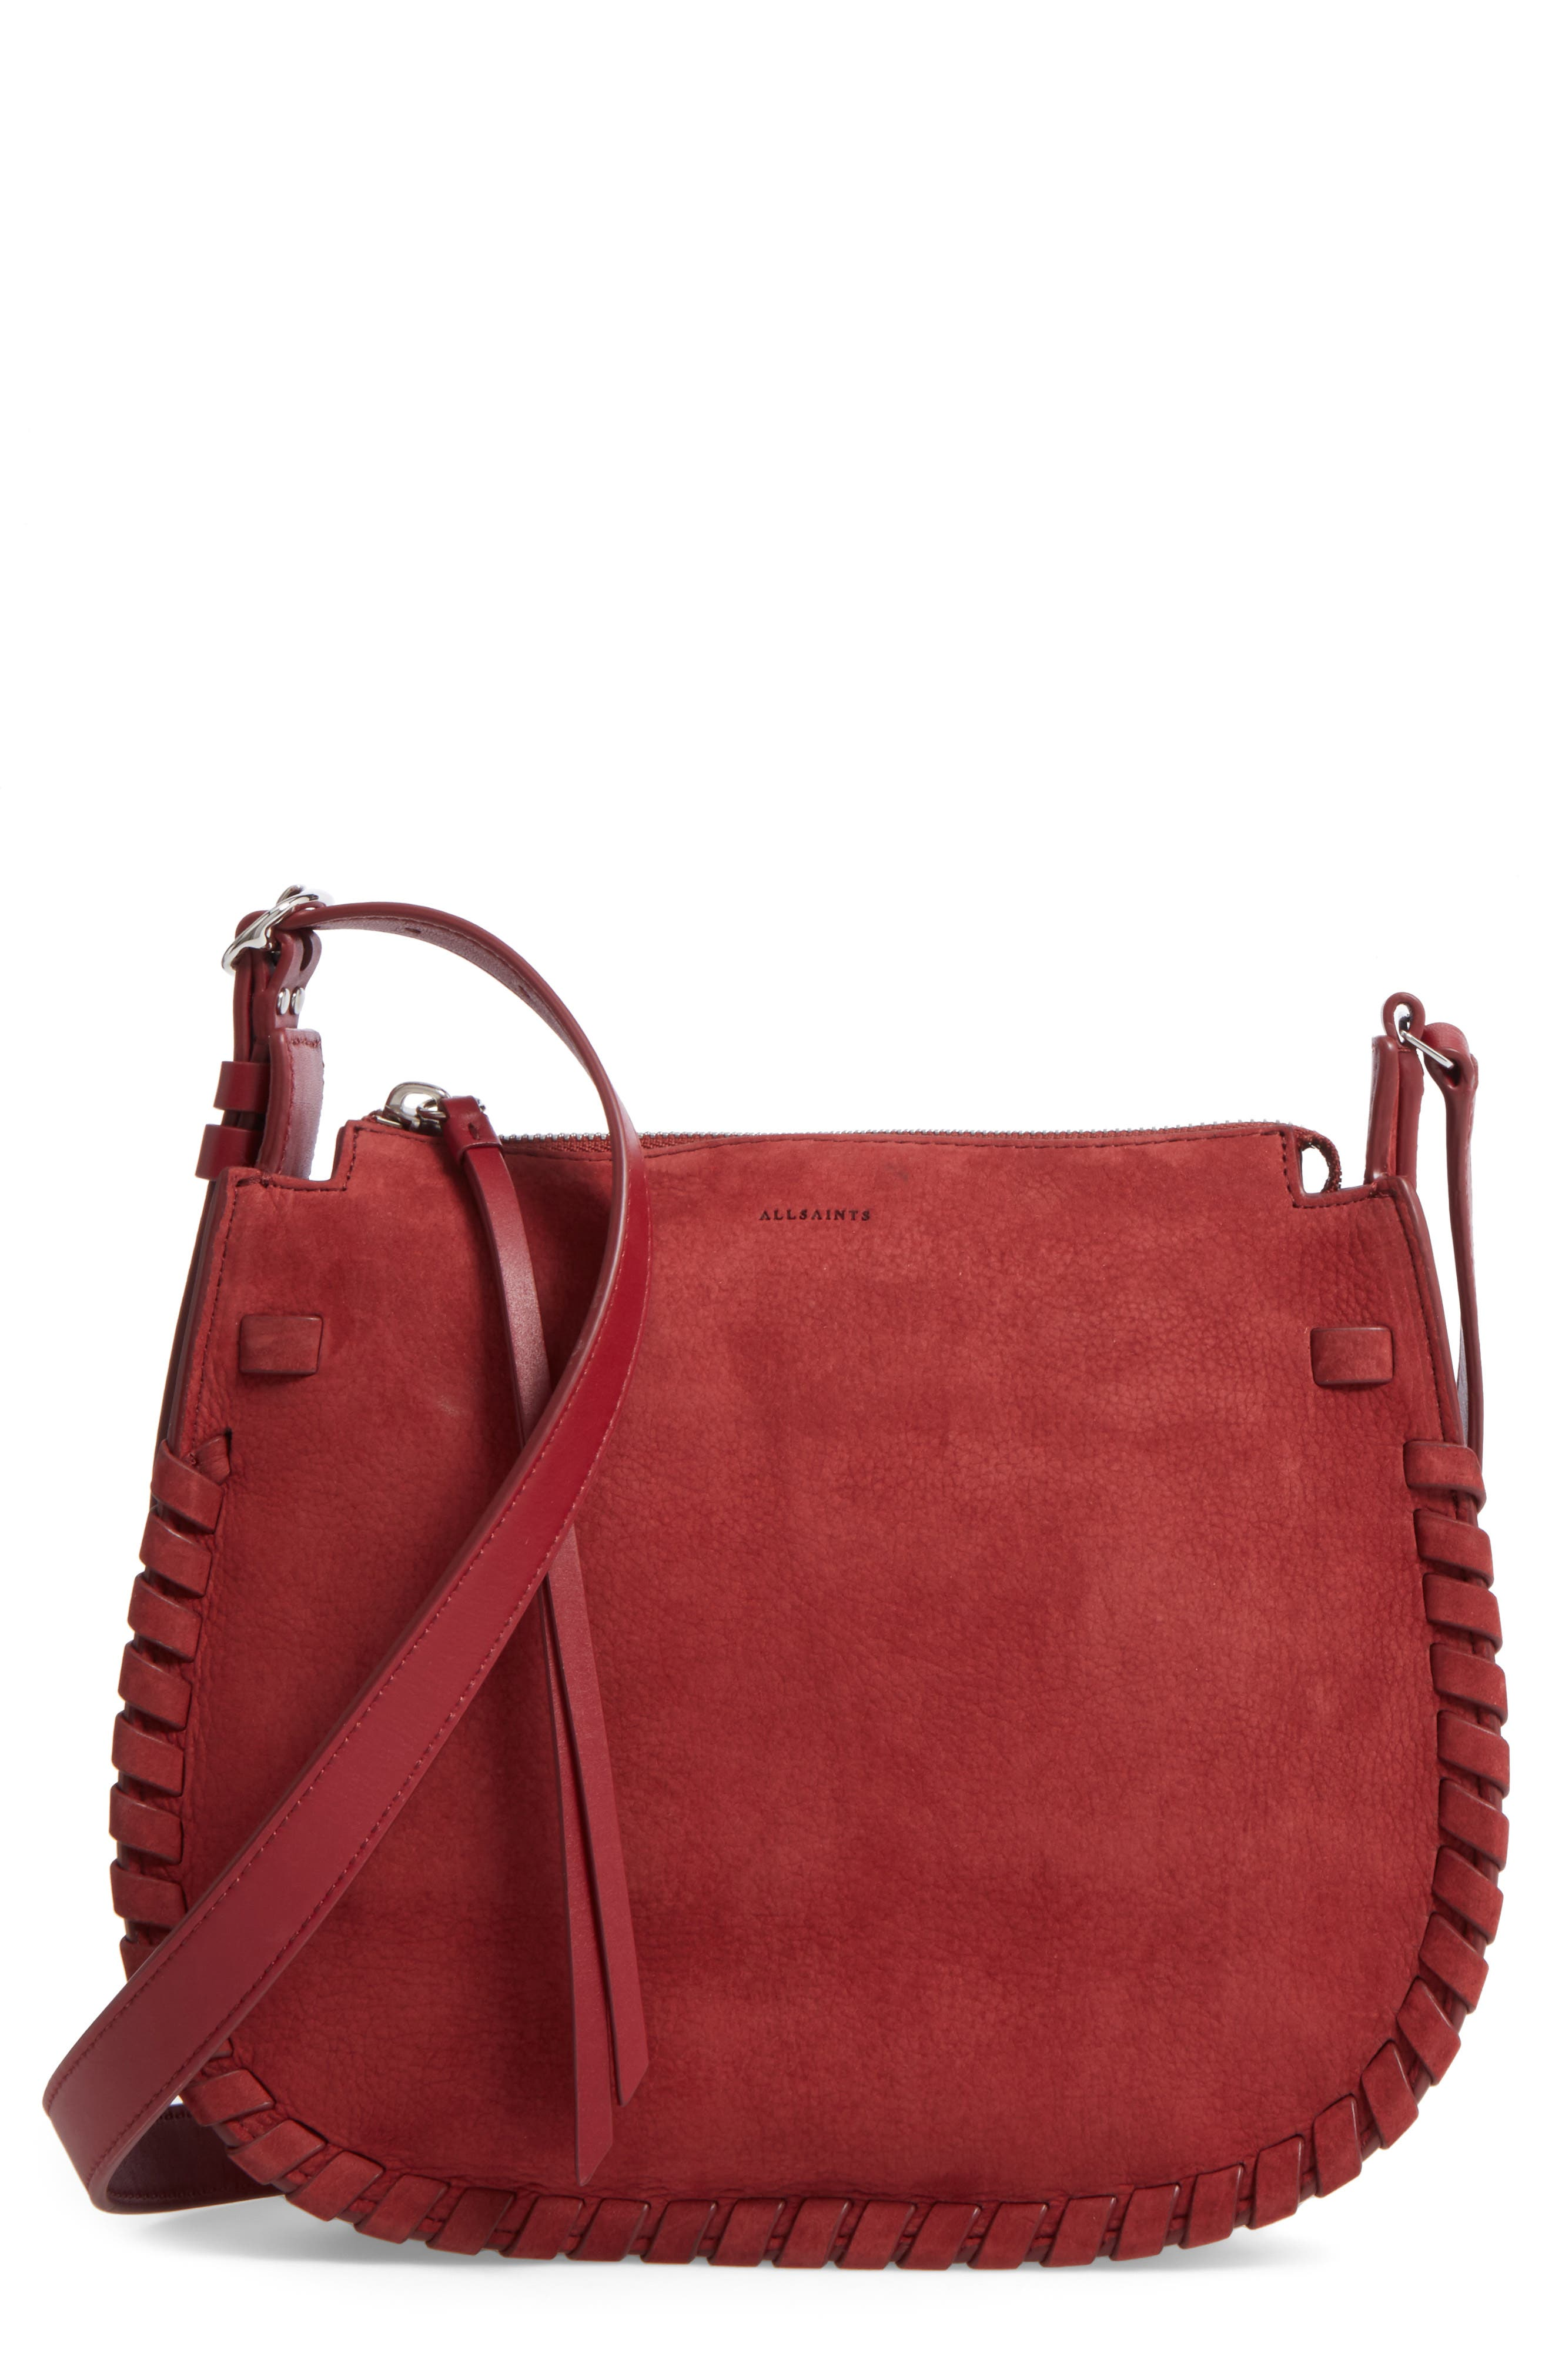 Alternate Image 1 Selected - ALLSAINTS Ray Nubuck Crossbody Bag (Nordstrom Exclusive)